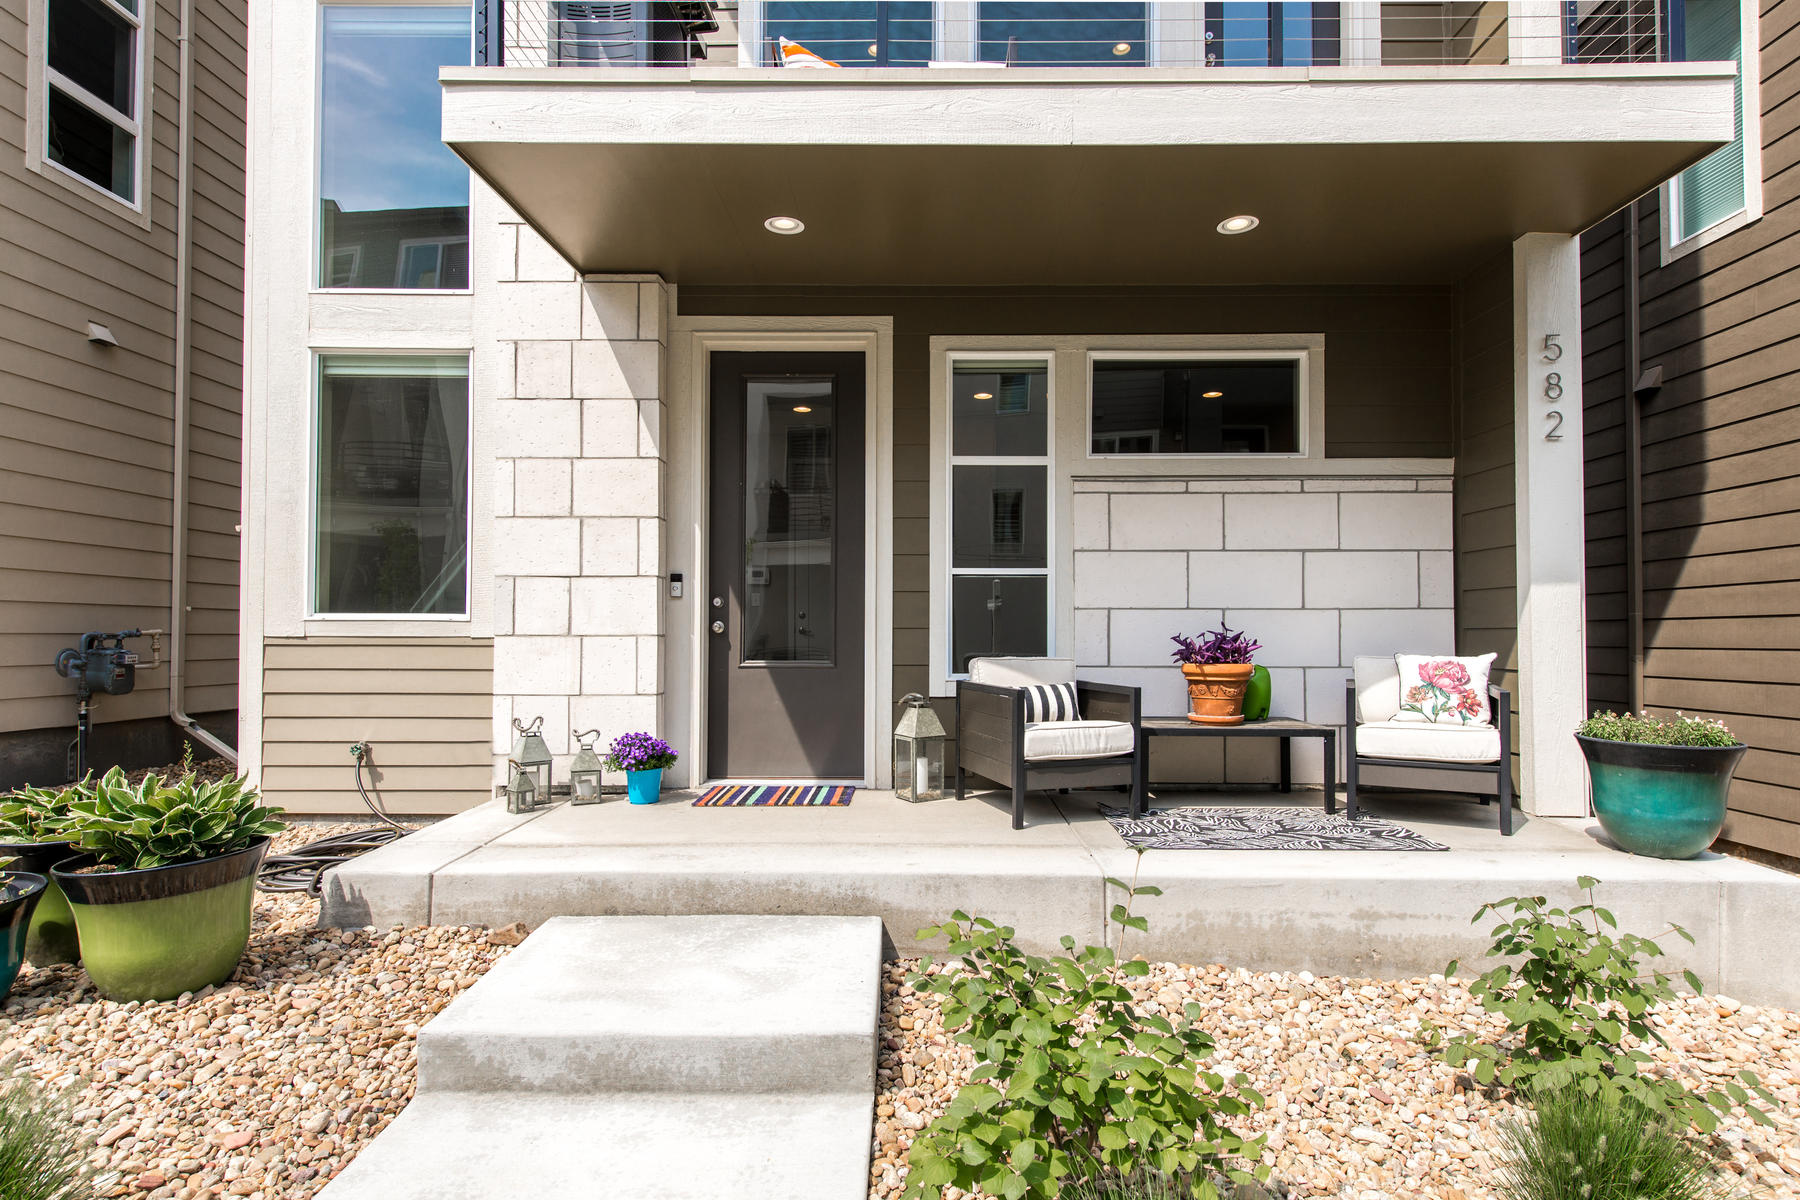 Single Family Home for Active at Beautifully appointed modern/contemporary 3 story in Littleton Village! 582 E Hinsdale Ave Littleton, Colorado 80122 United States